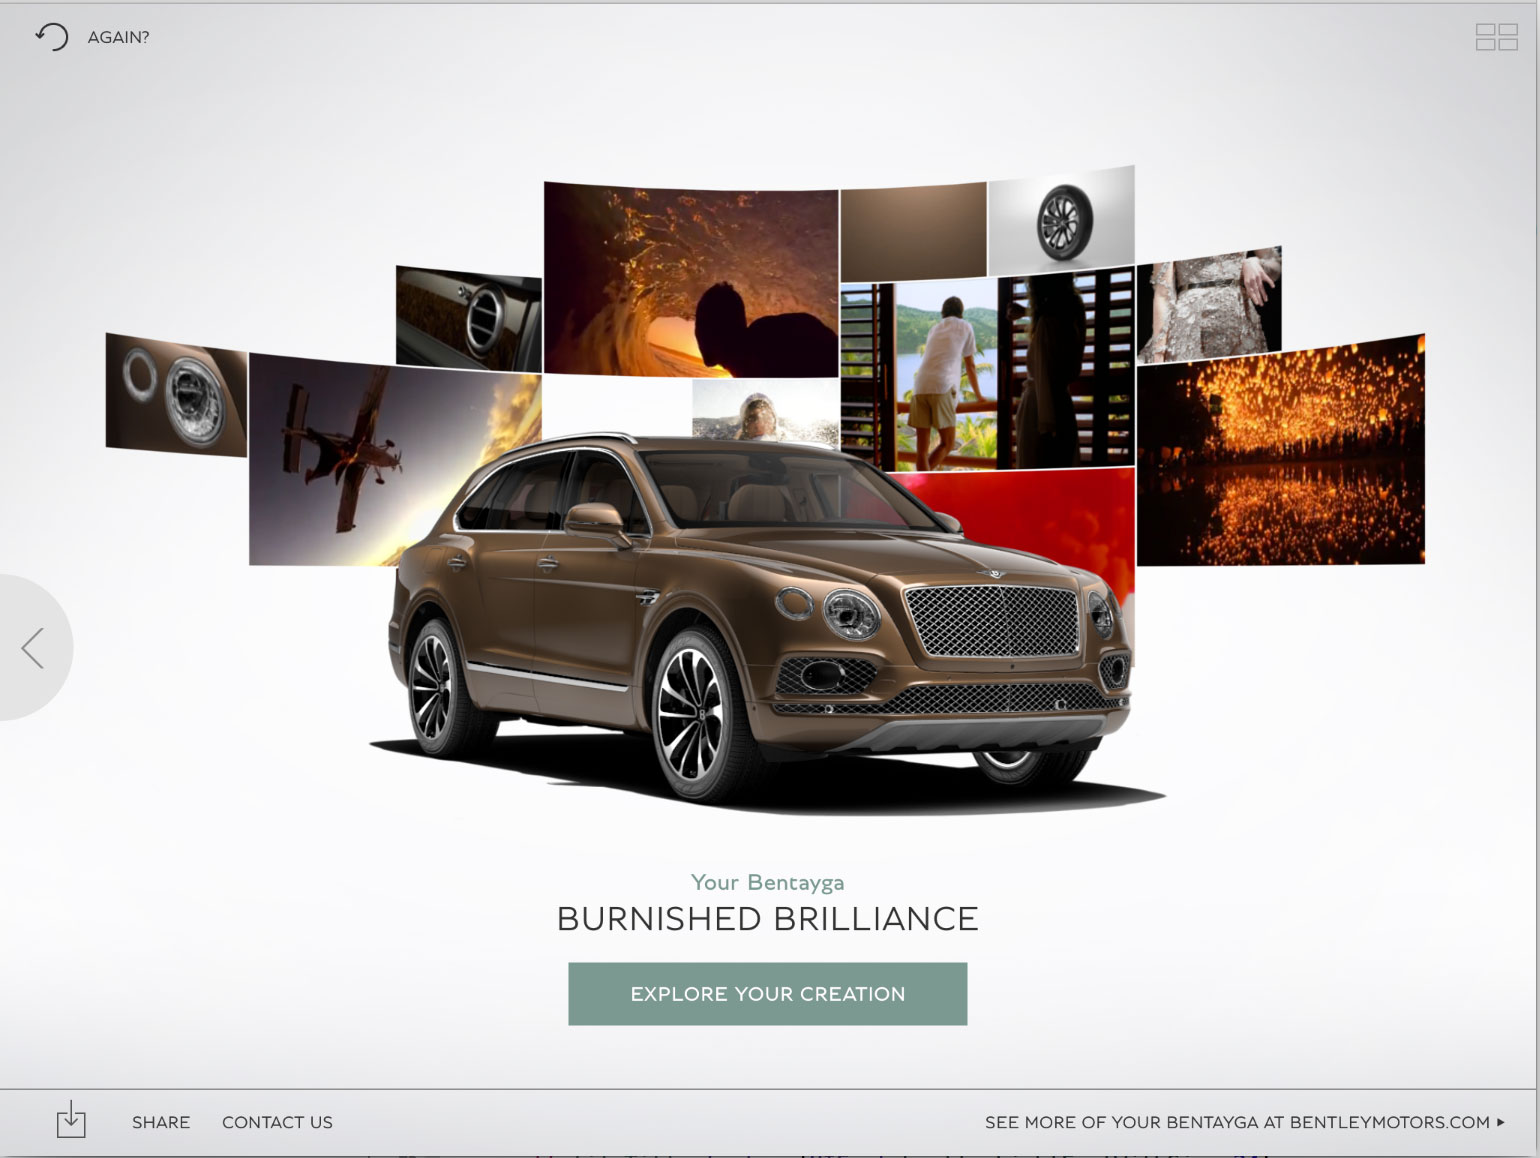 You can find the Bentley Inspirator app on the App Store and run it again and again